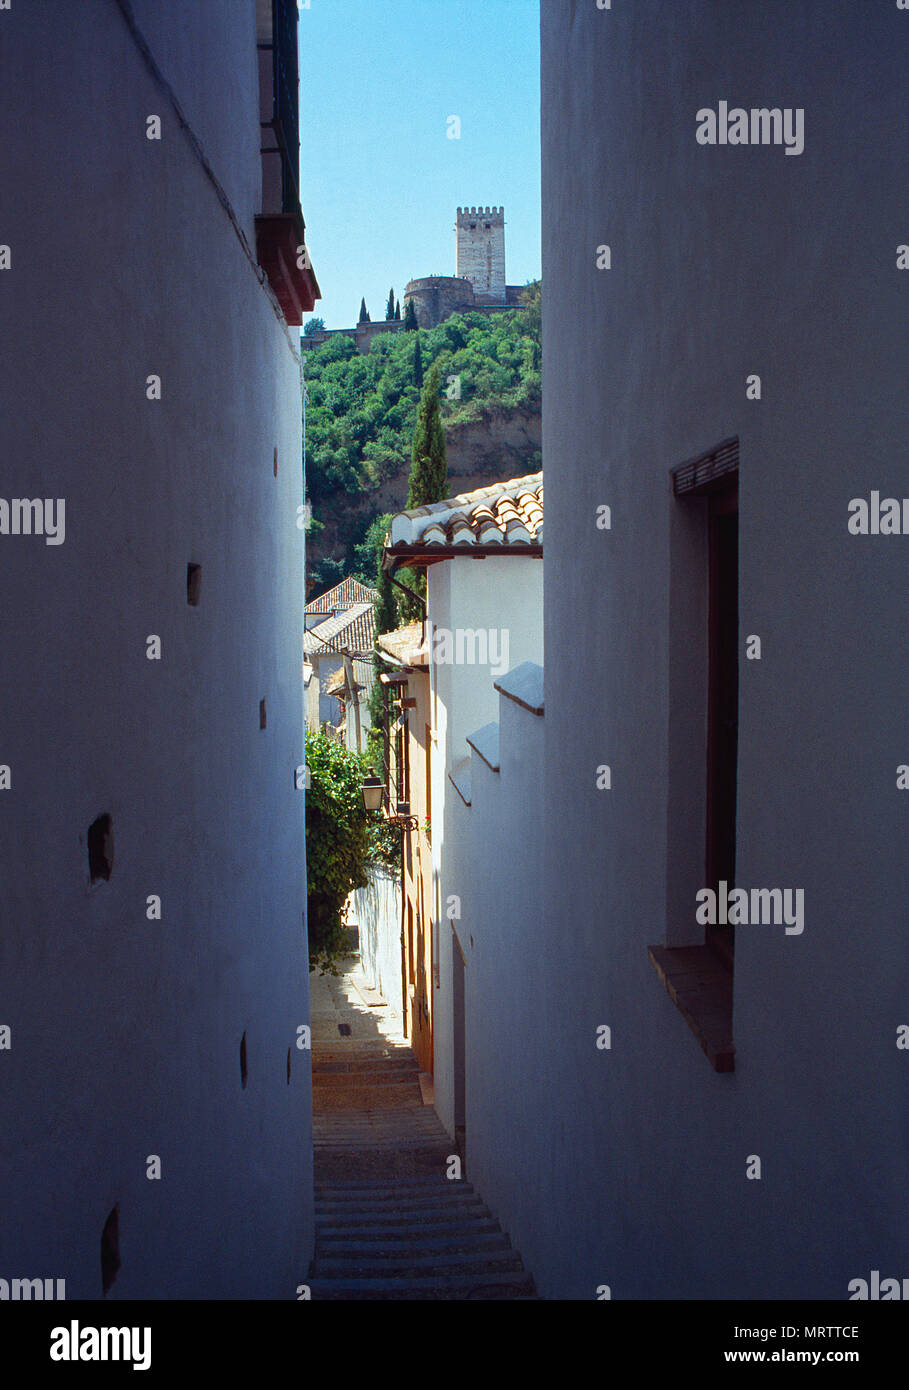 La Alhambra from El Albayzin. Granada, Spain. - Stock Image